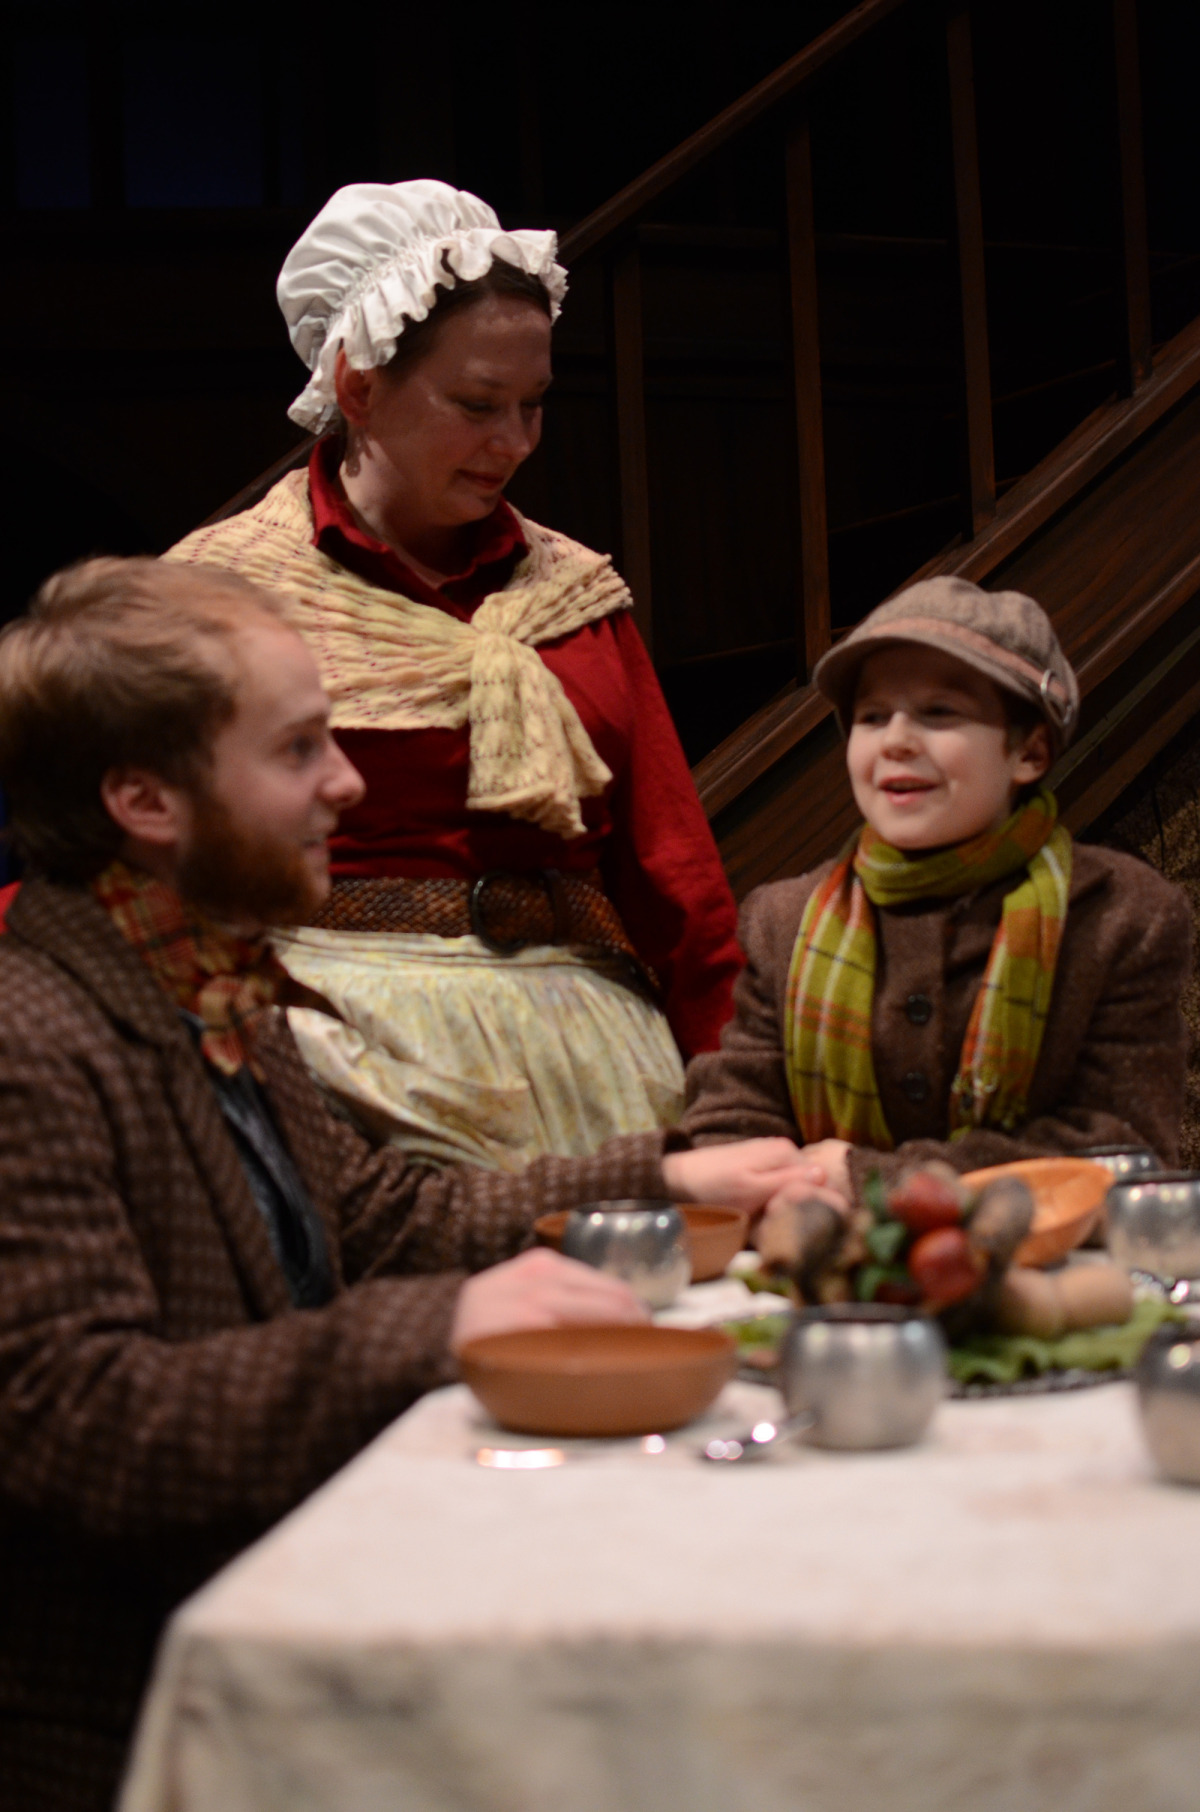 Nate Stahlke, Kathy Logelin, and Noah Chacon in A Christmas Carol (2013). Bettencourt Chase Photography.